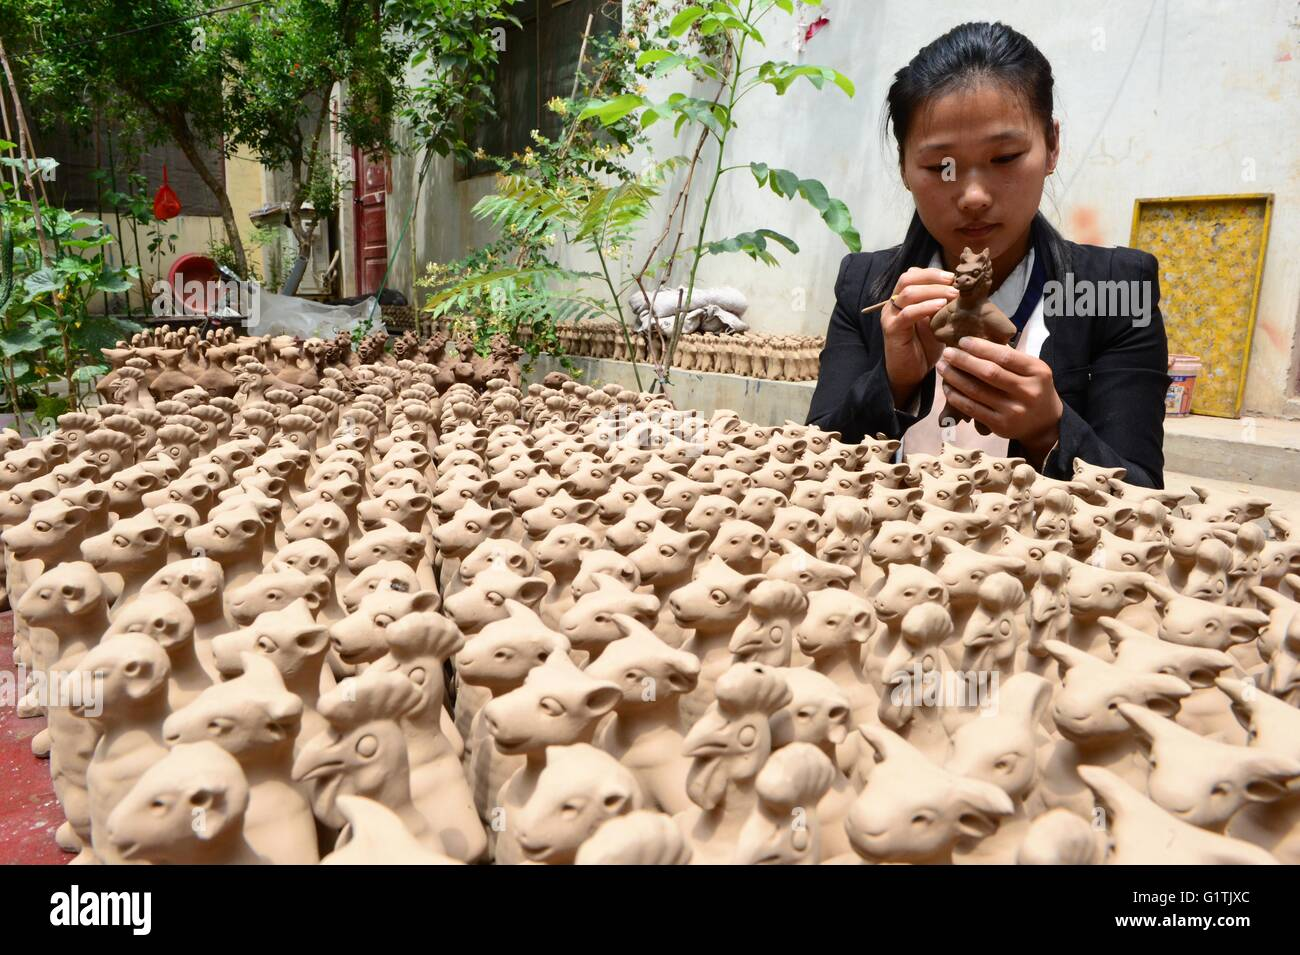 (160519) -- ZHENGZHOU, May 19, 2016 (Xinhua) -- A craftswoman works on a clay sculpture at her workshop in Yangqitun - Stock Image